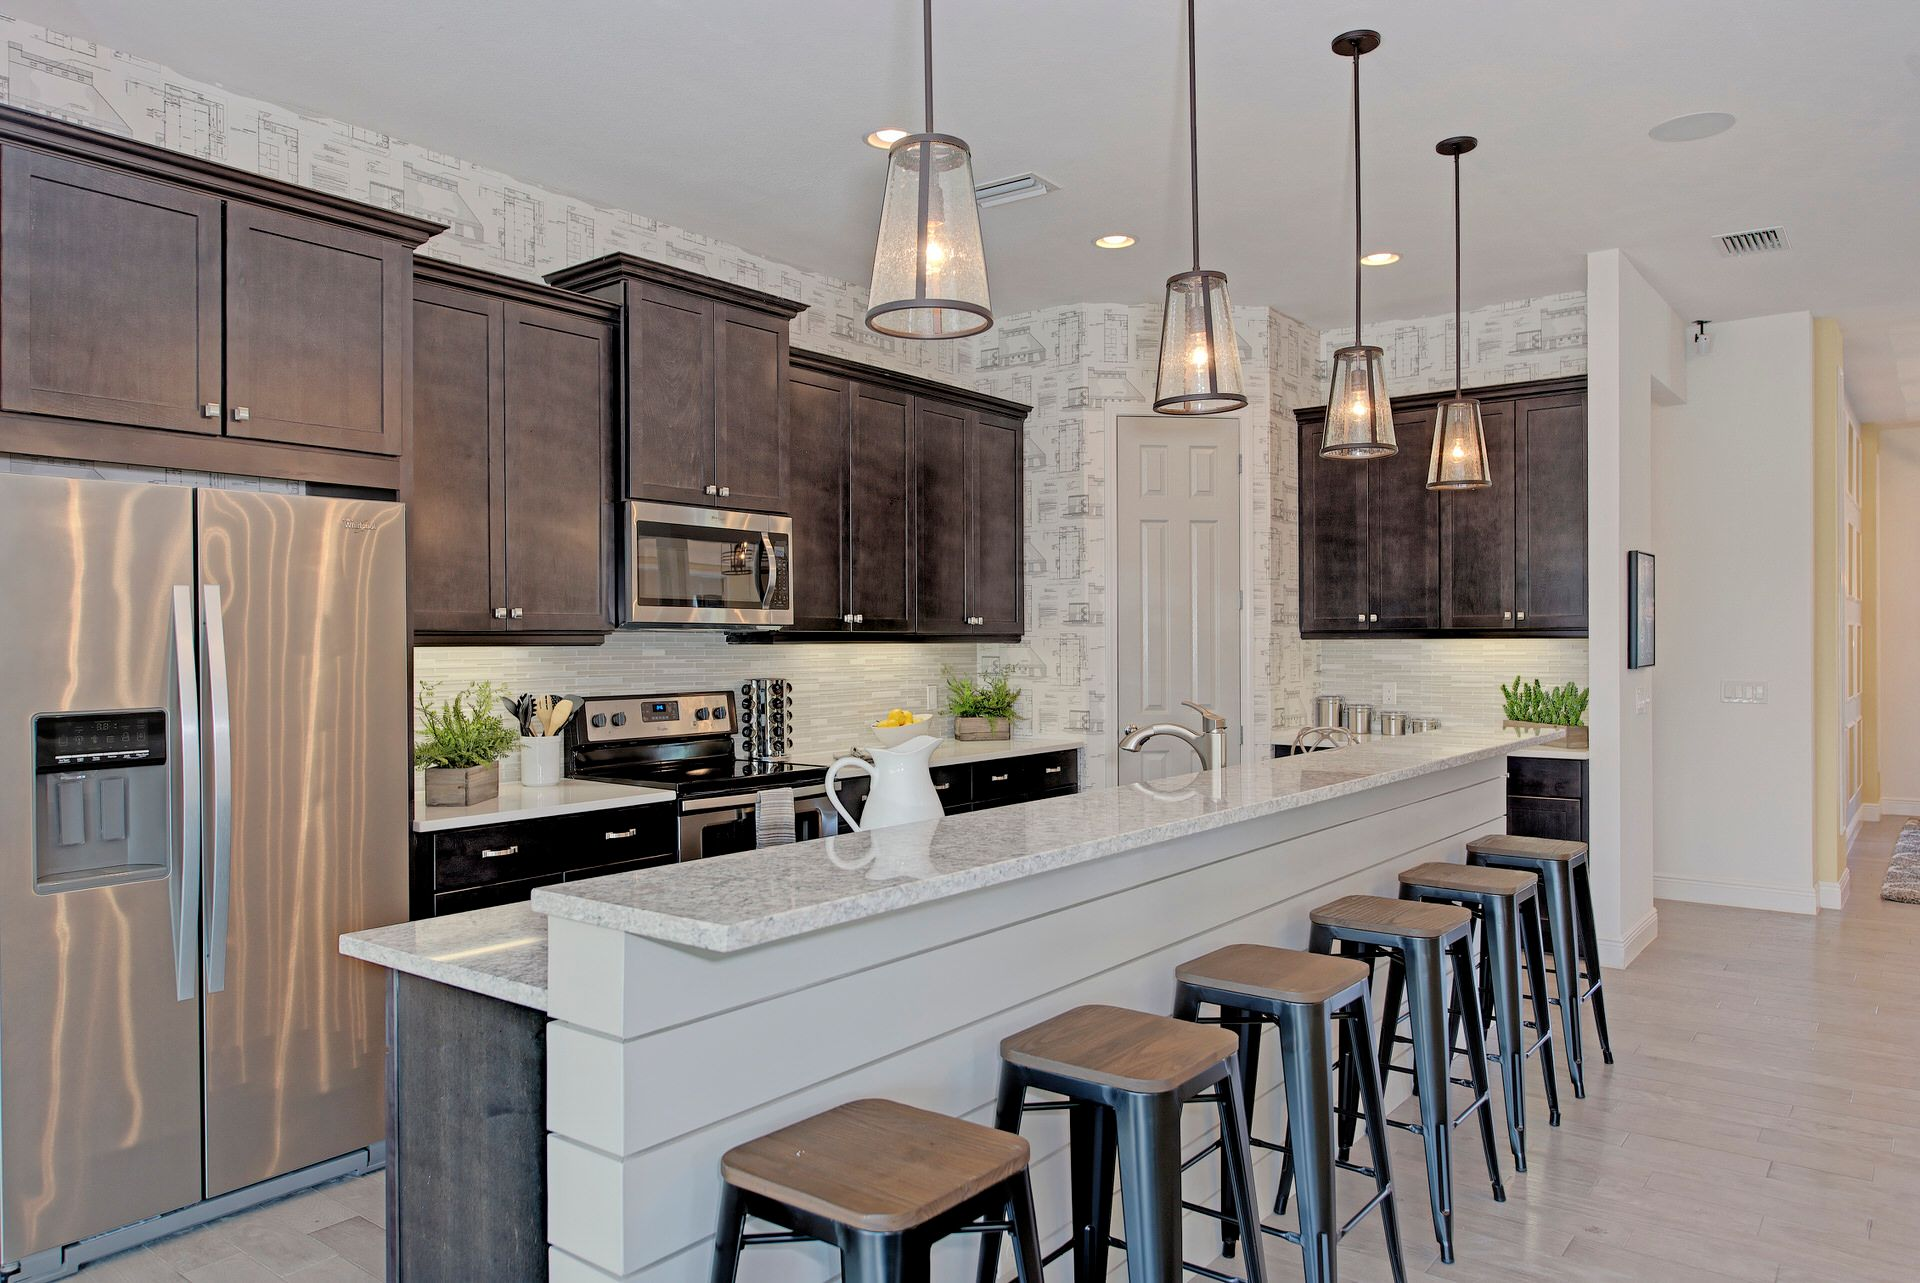 Kitchen featured in the Belize By Medallion Home in Sarasota-Bradenton, FL